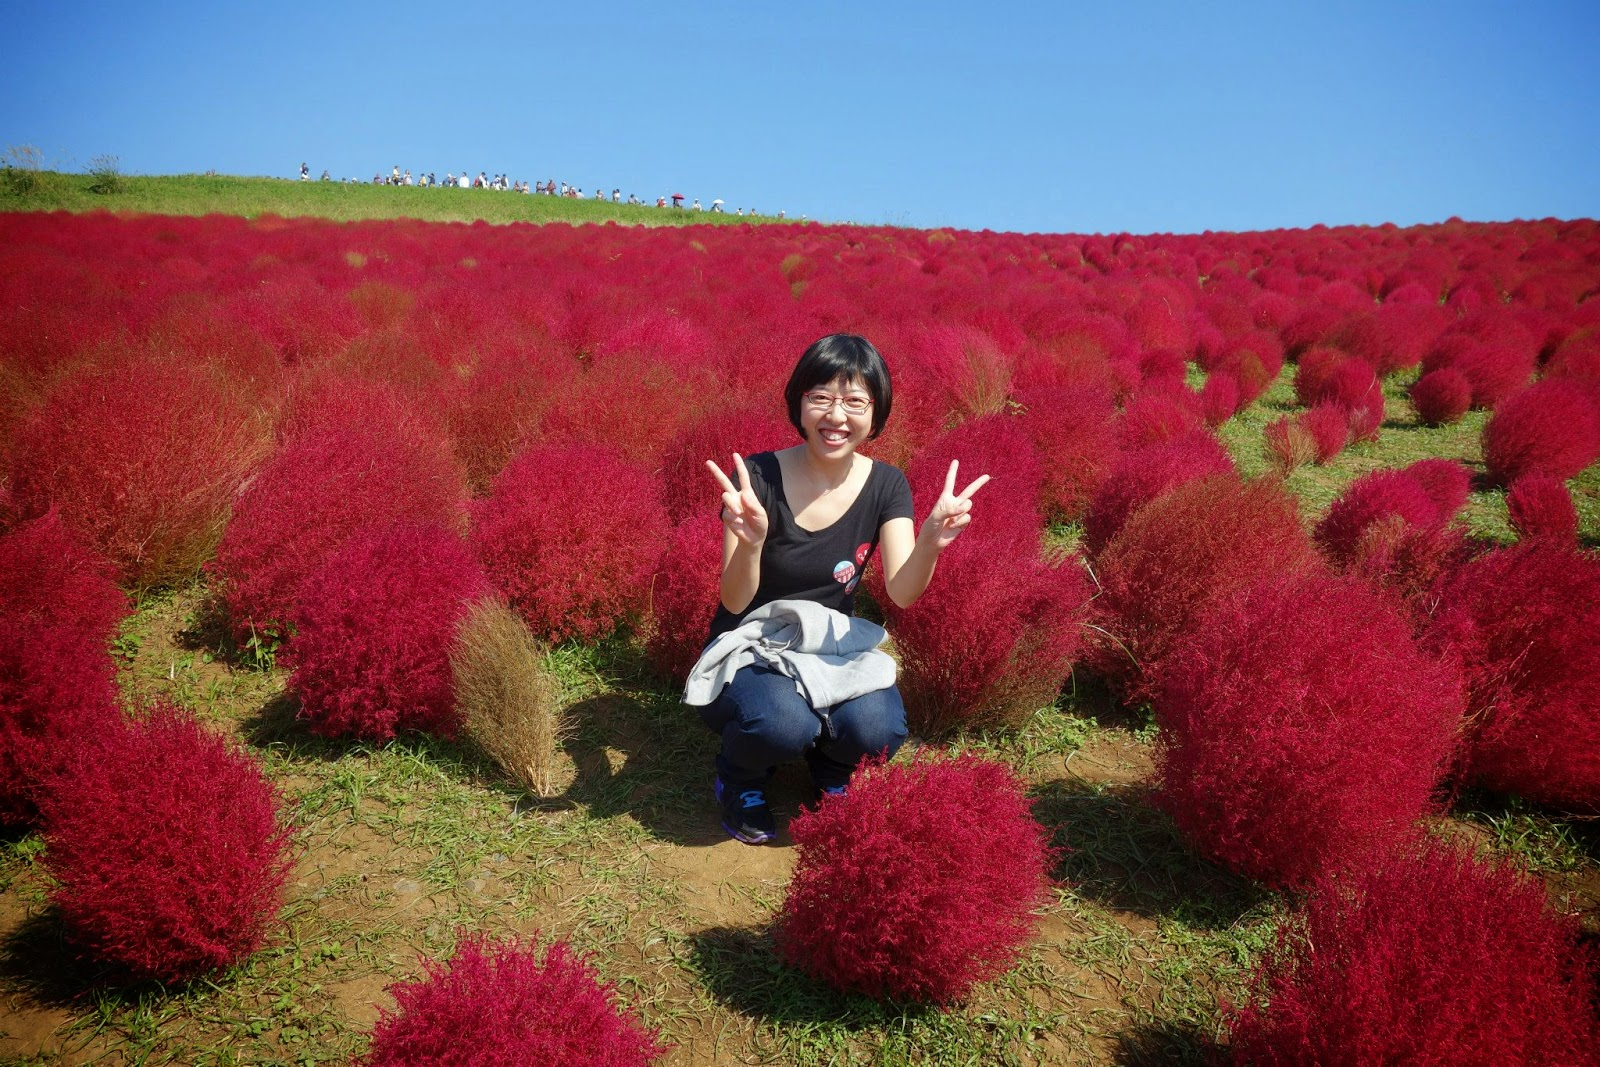 Red Kochia Bassia scoparia (syn. Kochia scoparia) Hitachi Seaside park kaihin kouen